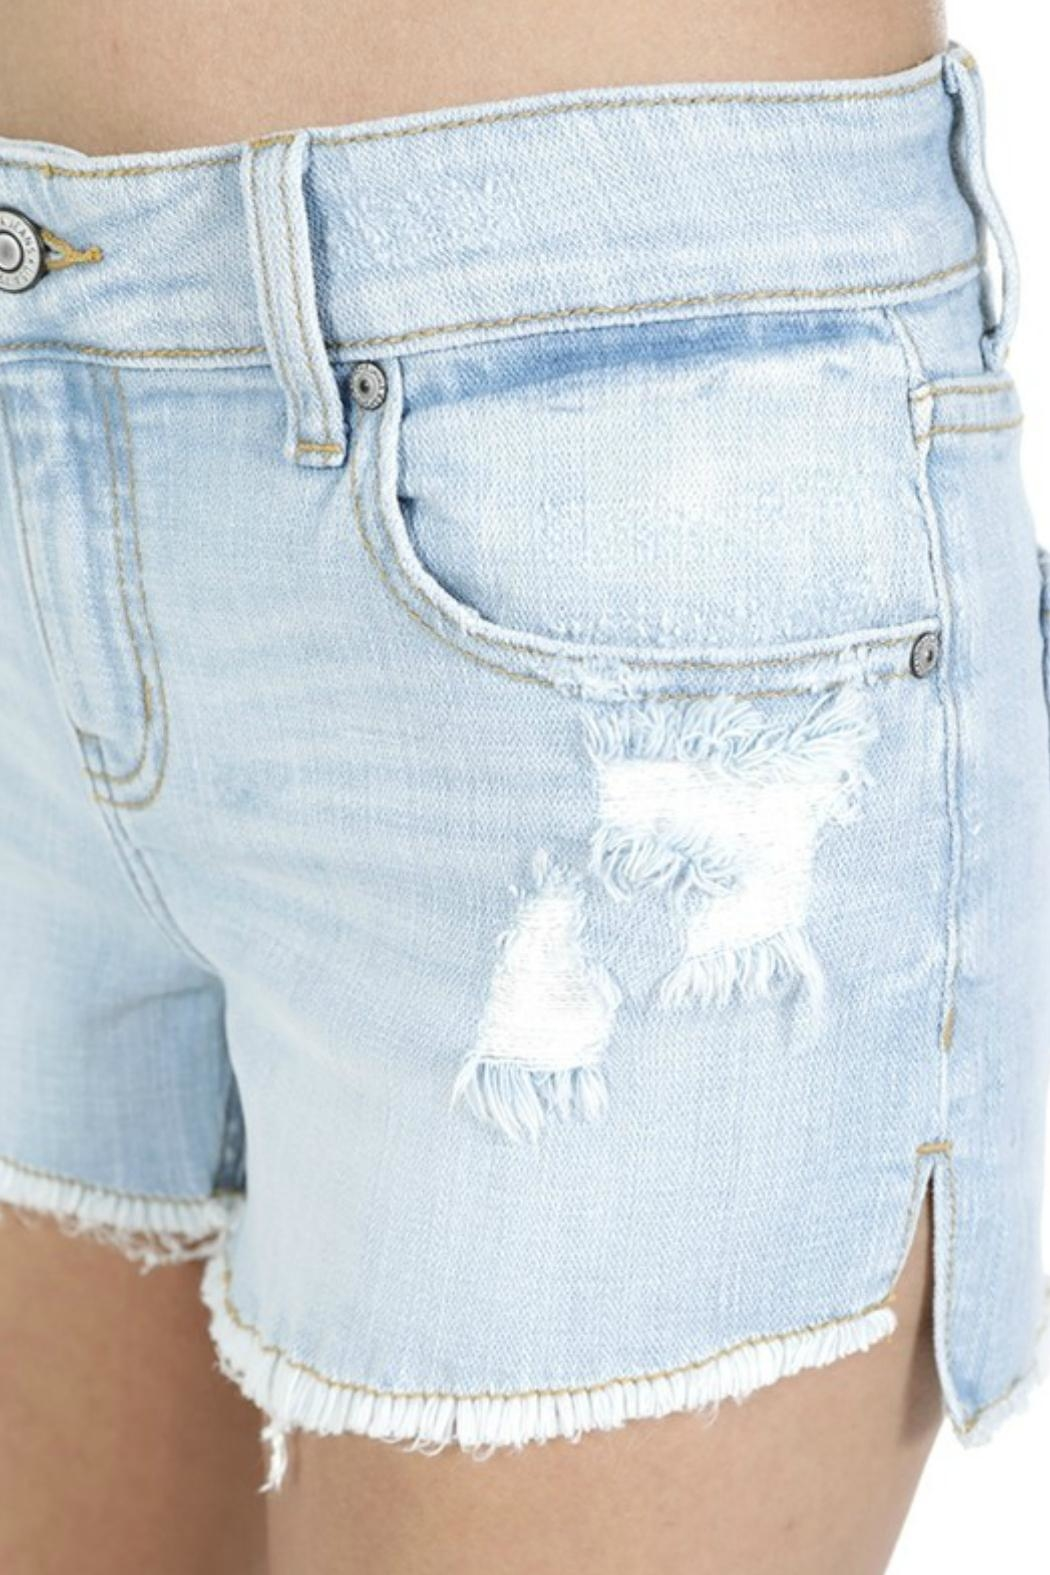 9e69bd3004e6b Eunina Lightwash Distressed Shorts from Texas by POE and Arrows ...